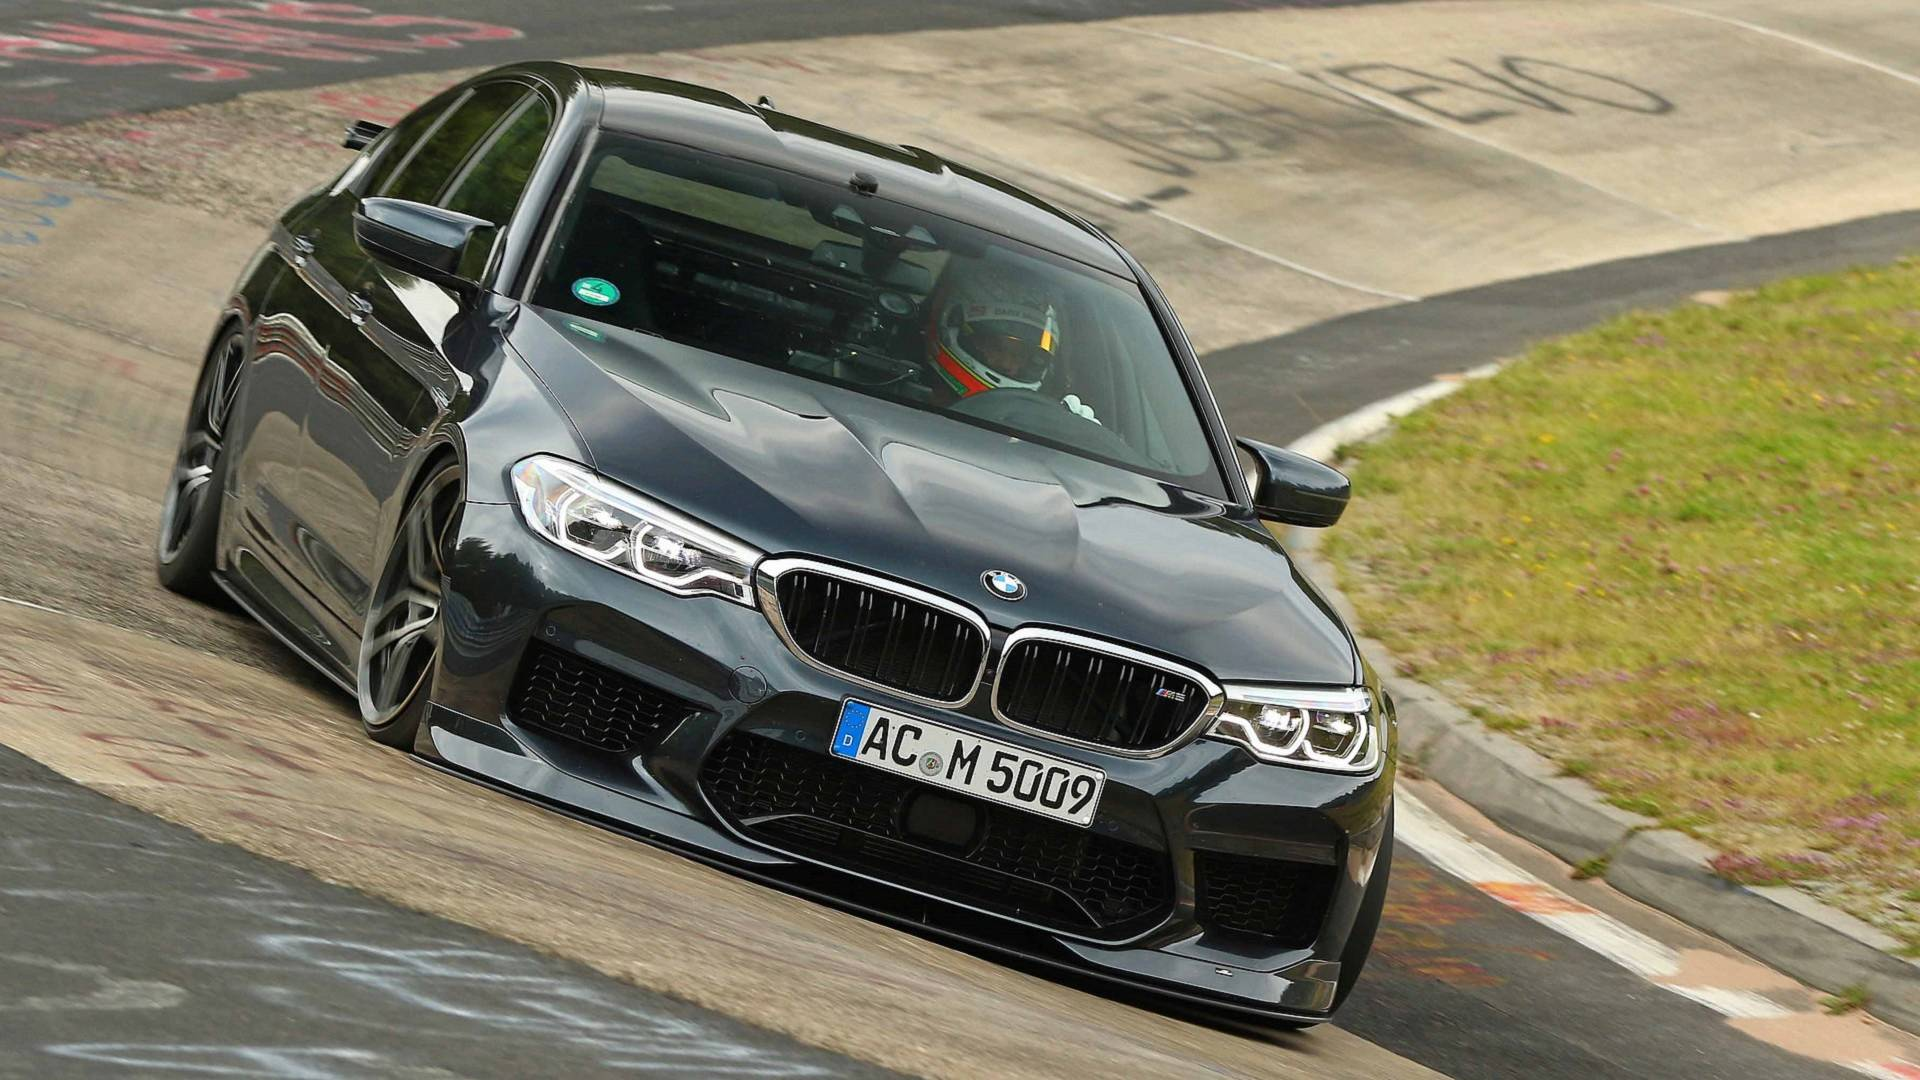 Watch AC Schnitzer Set BMW M Nurburgring Record In Onboard Video - Schnitzer